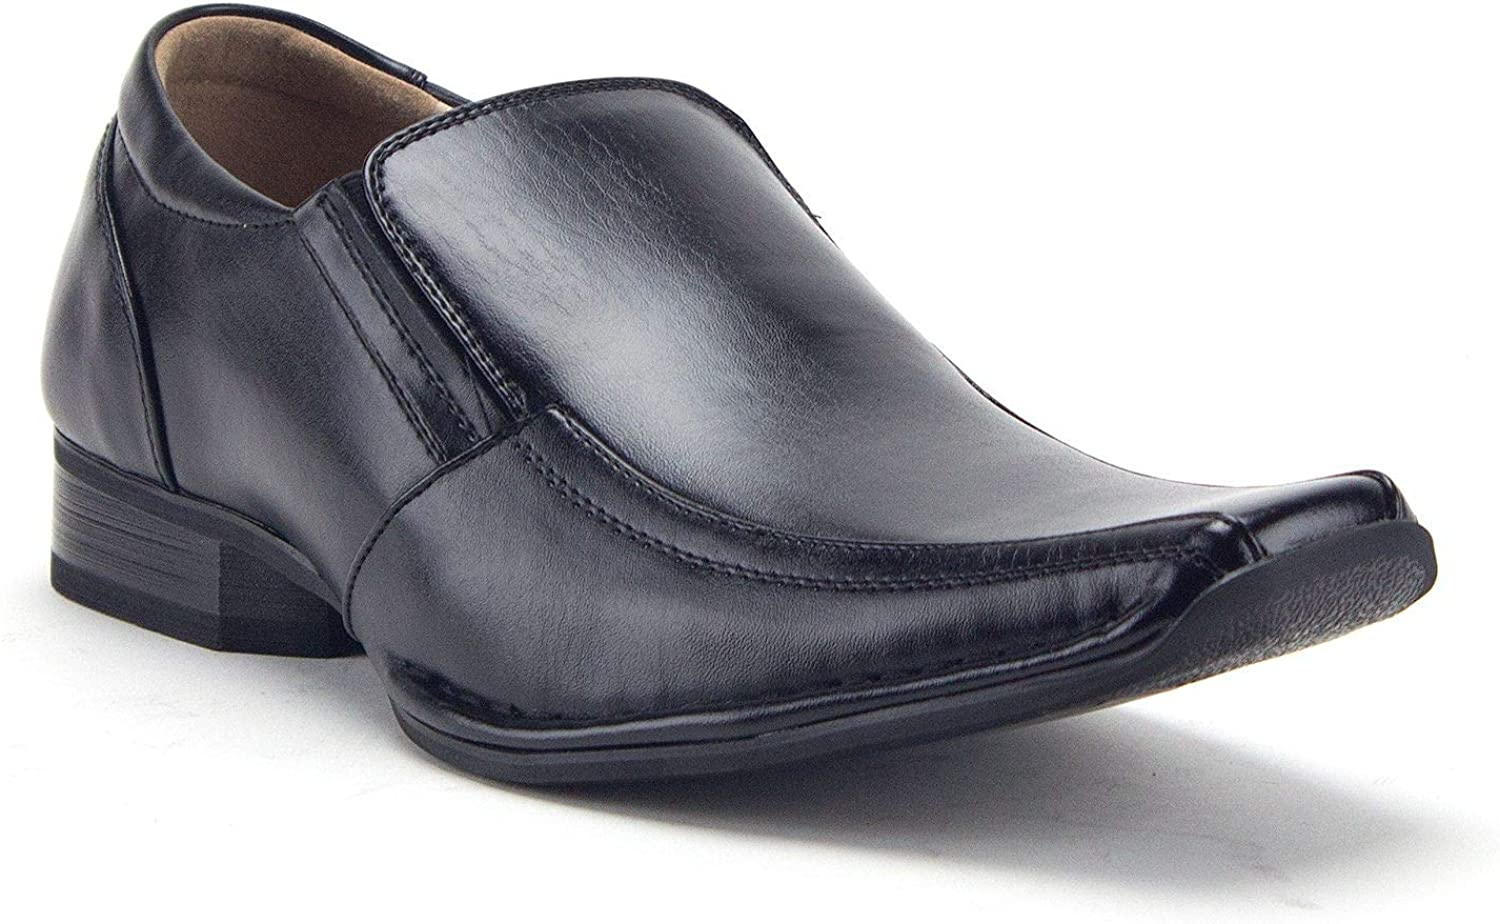 Men's 99374 Slip On Square Toe Classic Loafers Dress Shoes